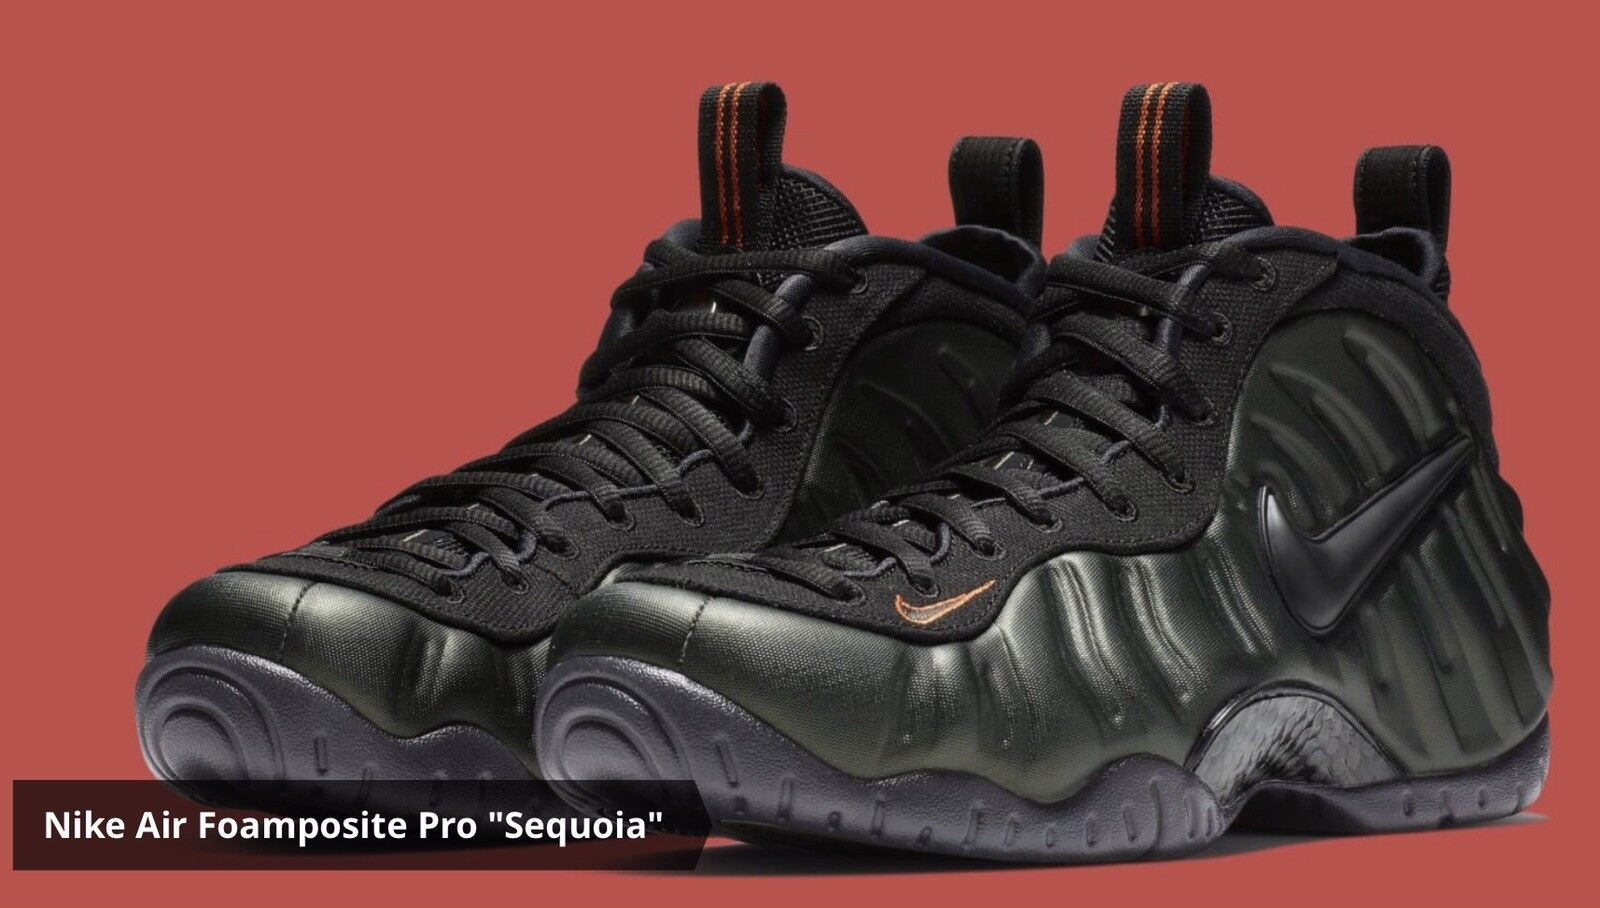 DS MENS NIKE AIR FOAMPOSITE PRO SEQUOIA BLACK 624041 304 BB SZ 11 BUSTED BOX